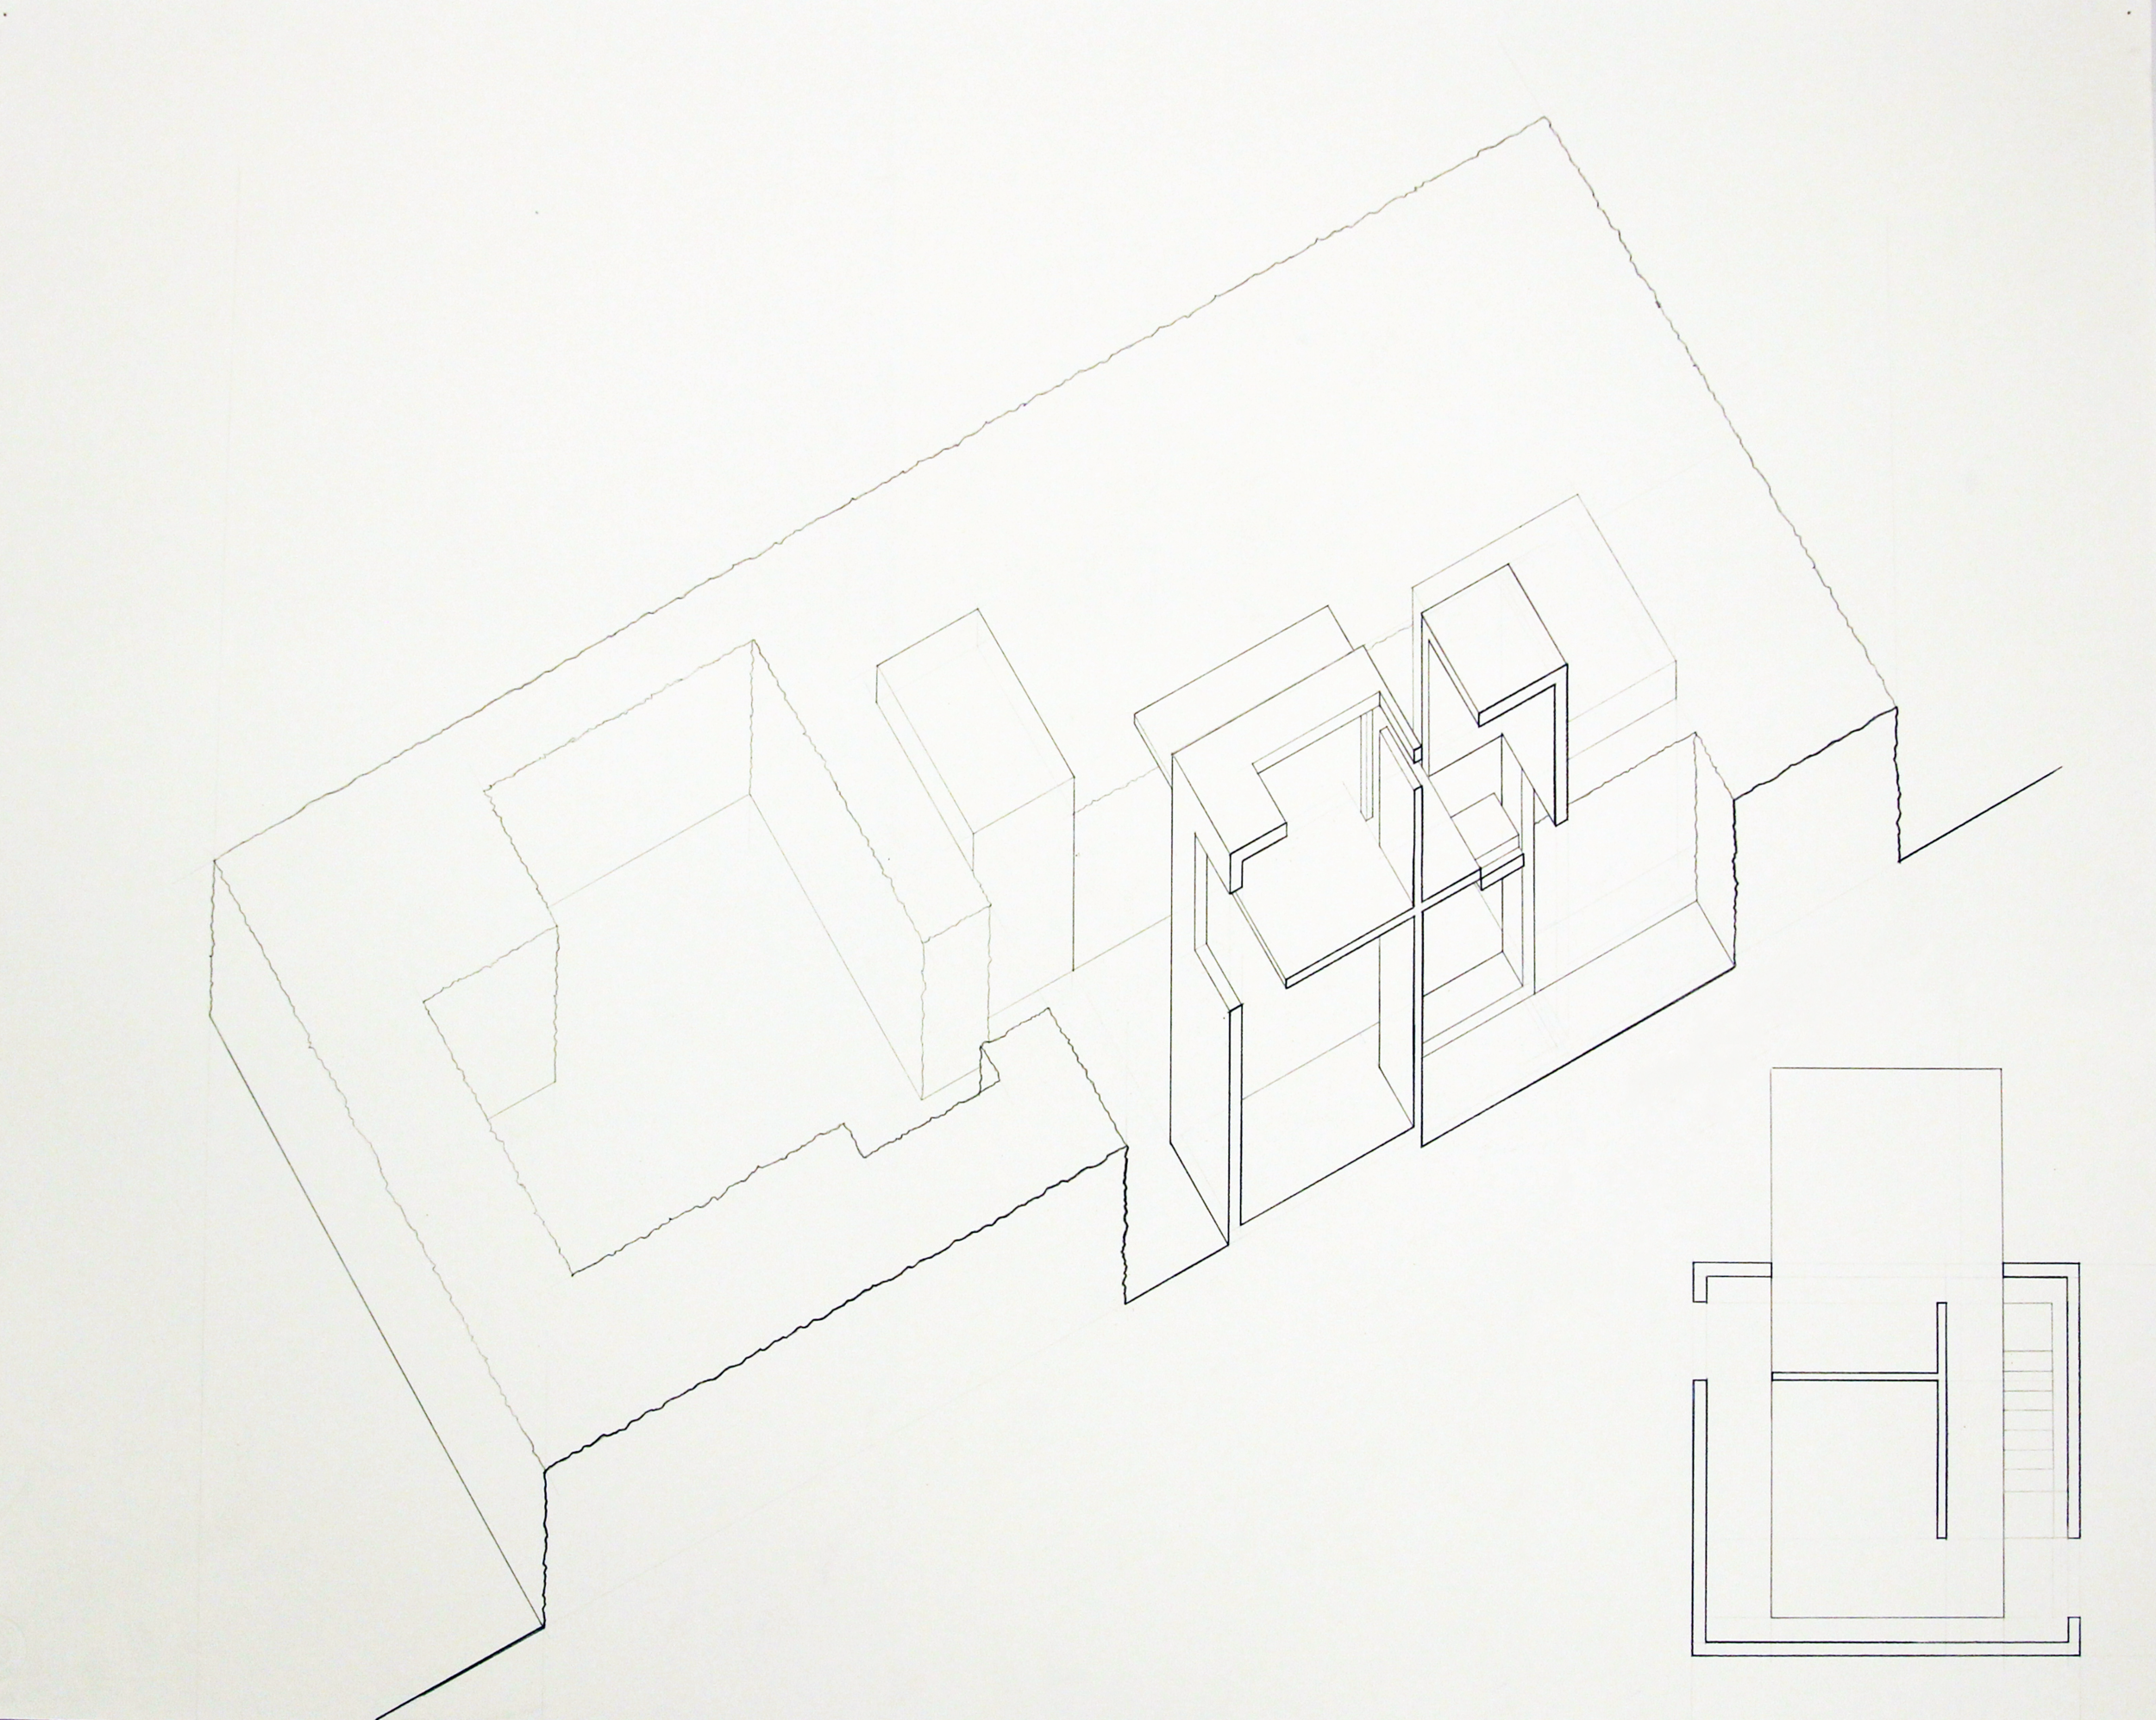 Isometric section and plan